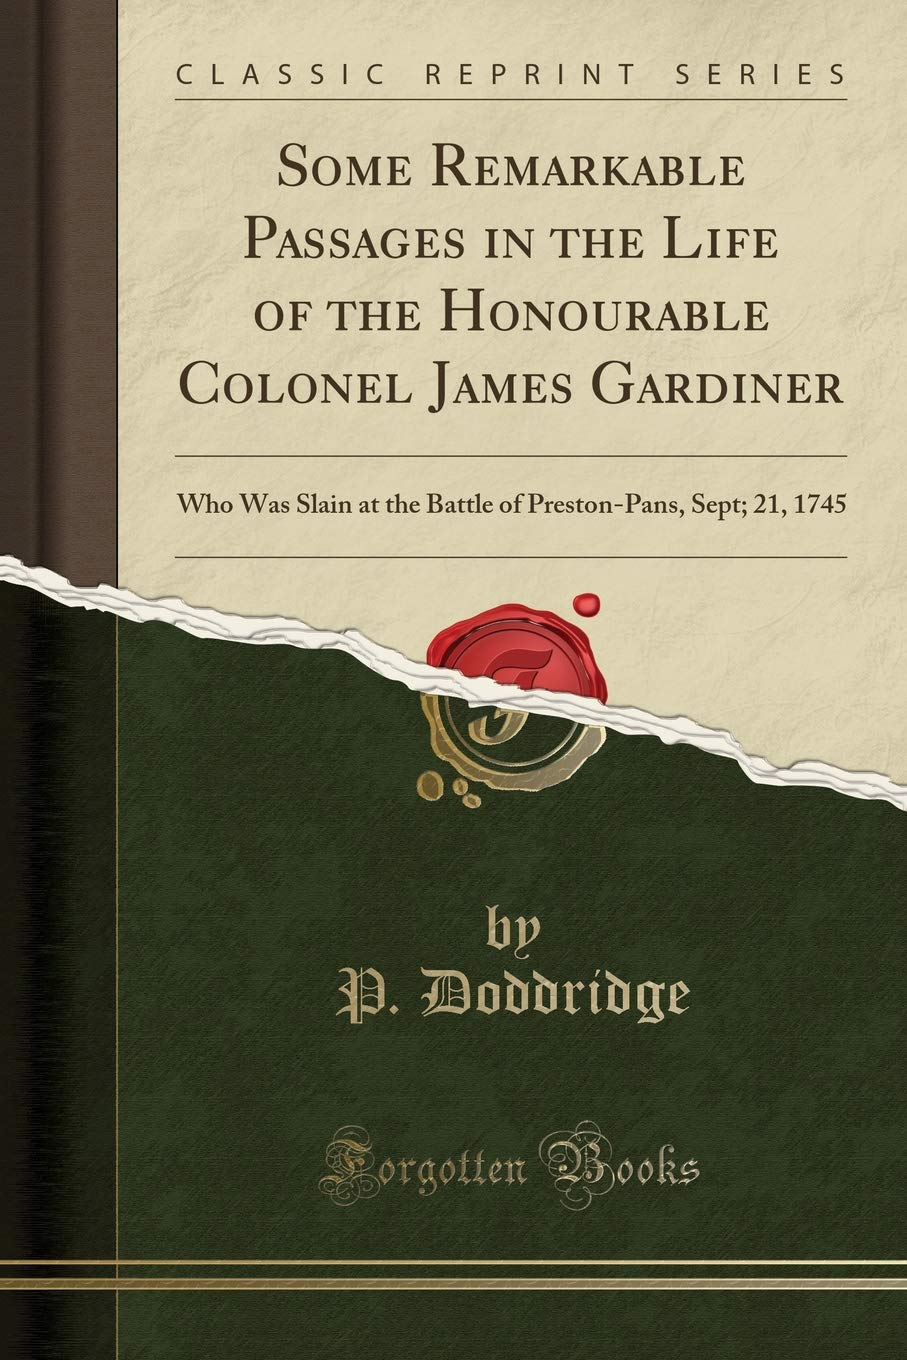 Some Remarkable Passages in the Life of the Honourable Colonel James Gardiner: Who Was Slain at the Battle of Preston-Pans, Sept; 21, 1745 (Classic Reprint) PDF